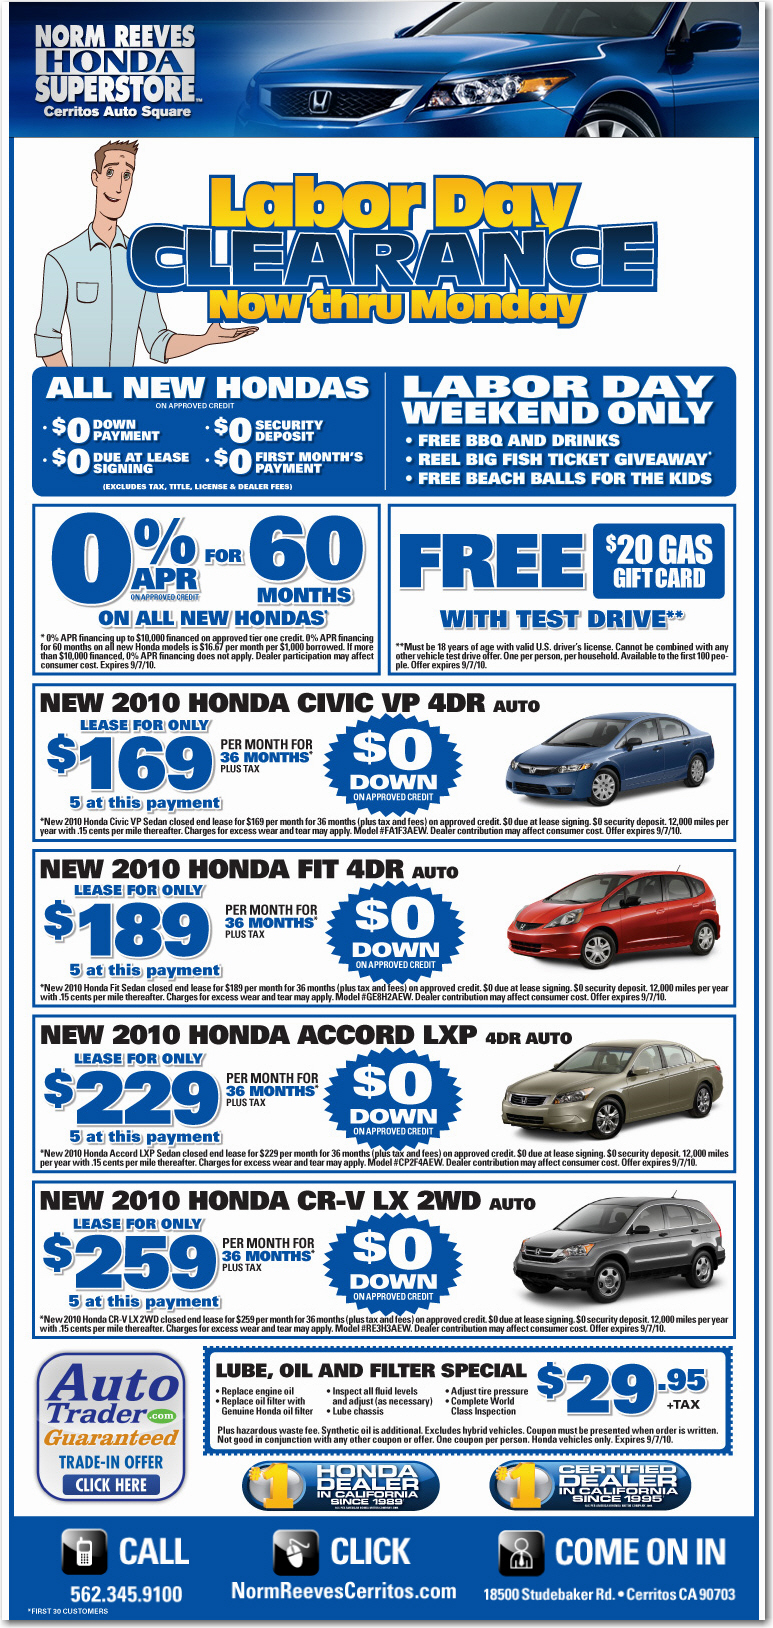 Norm Reeves Honda >> Events | Norm Reeves Honda's Blog